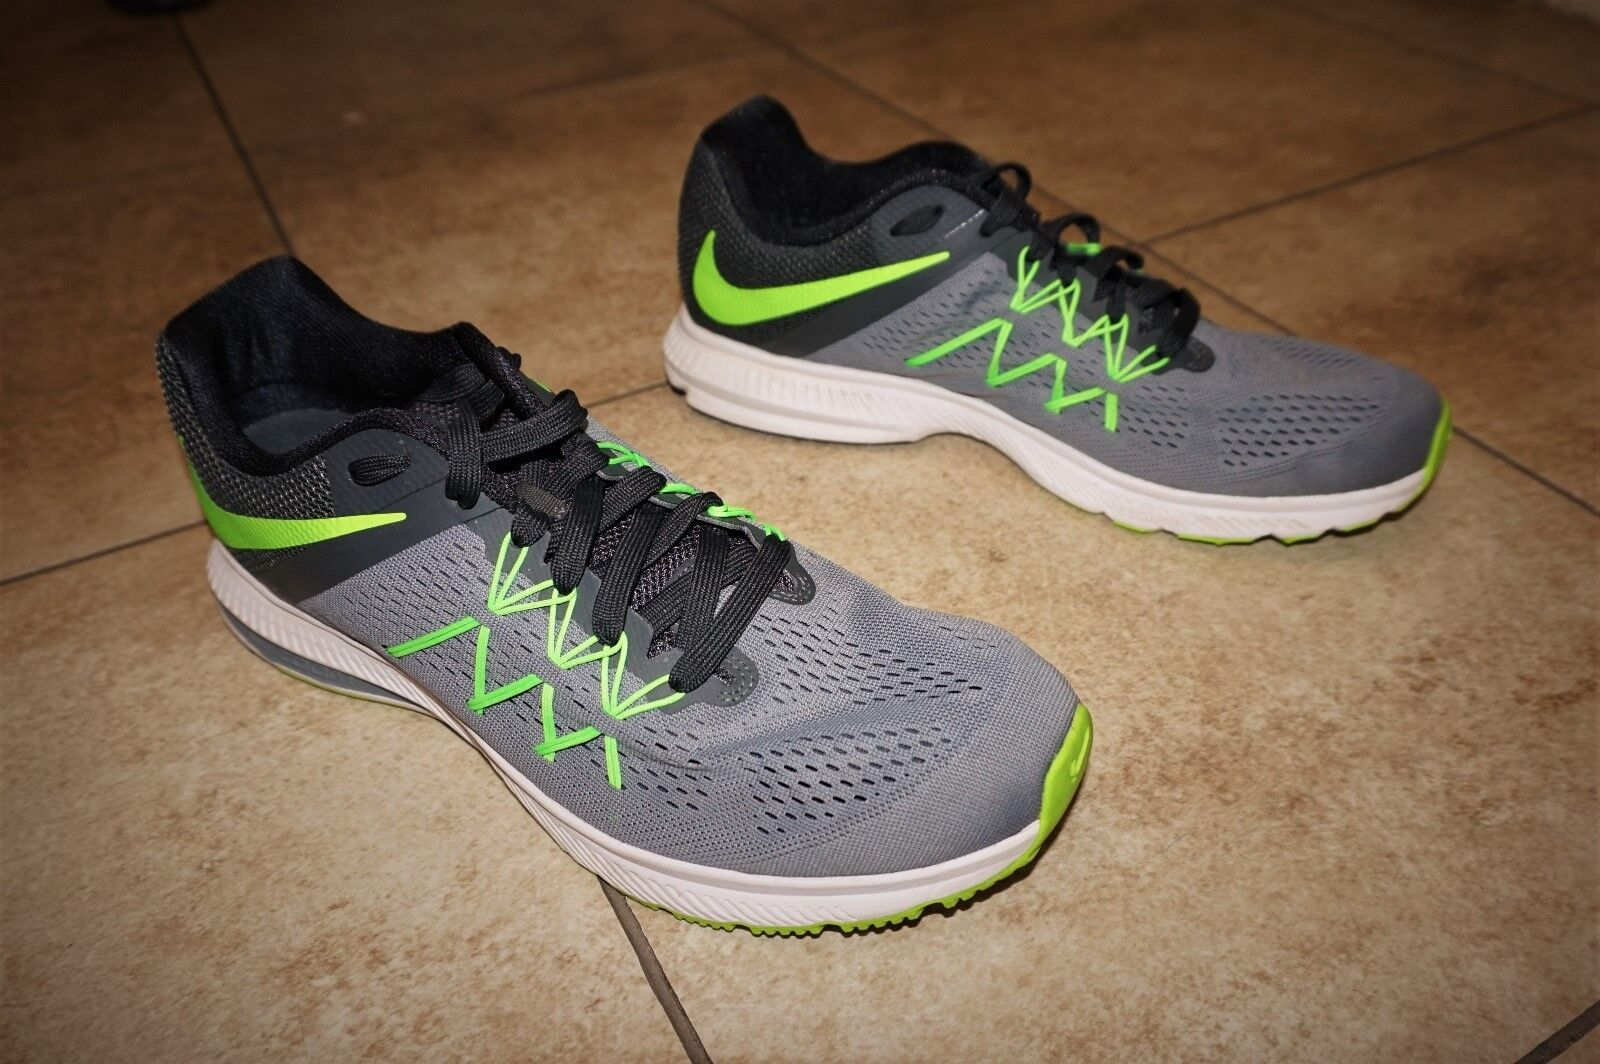 Nike Zoom Winflo 3 Men's Running Shoes Trainers US Size 13